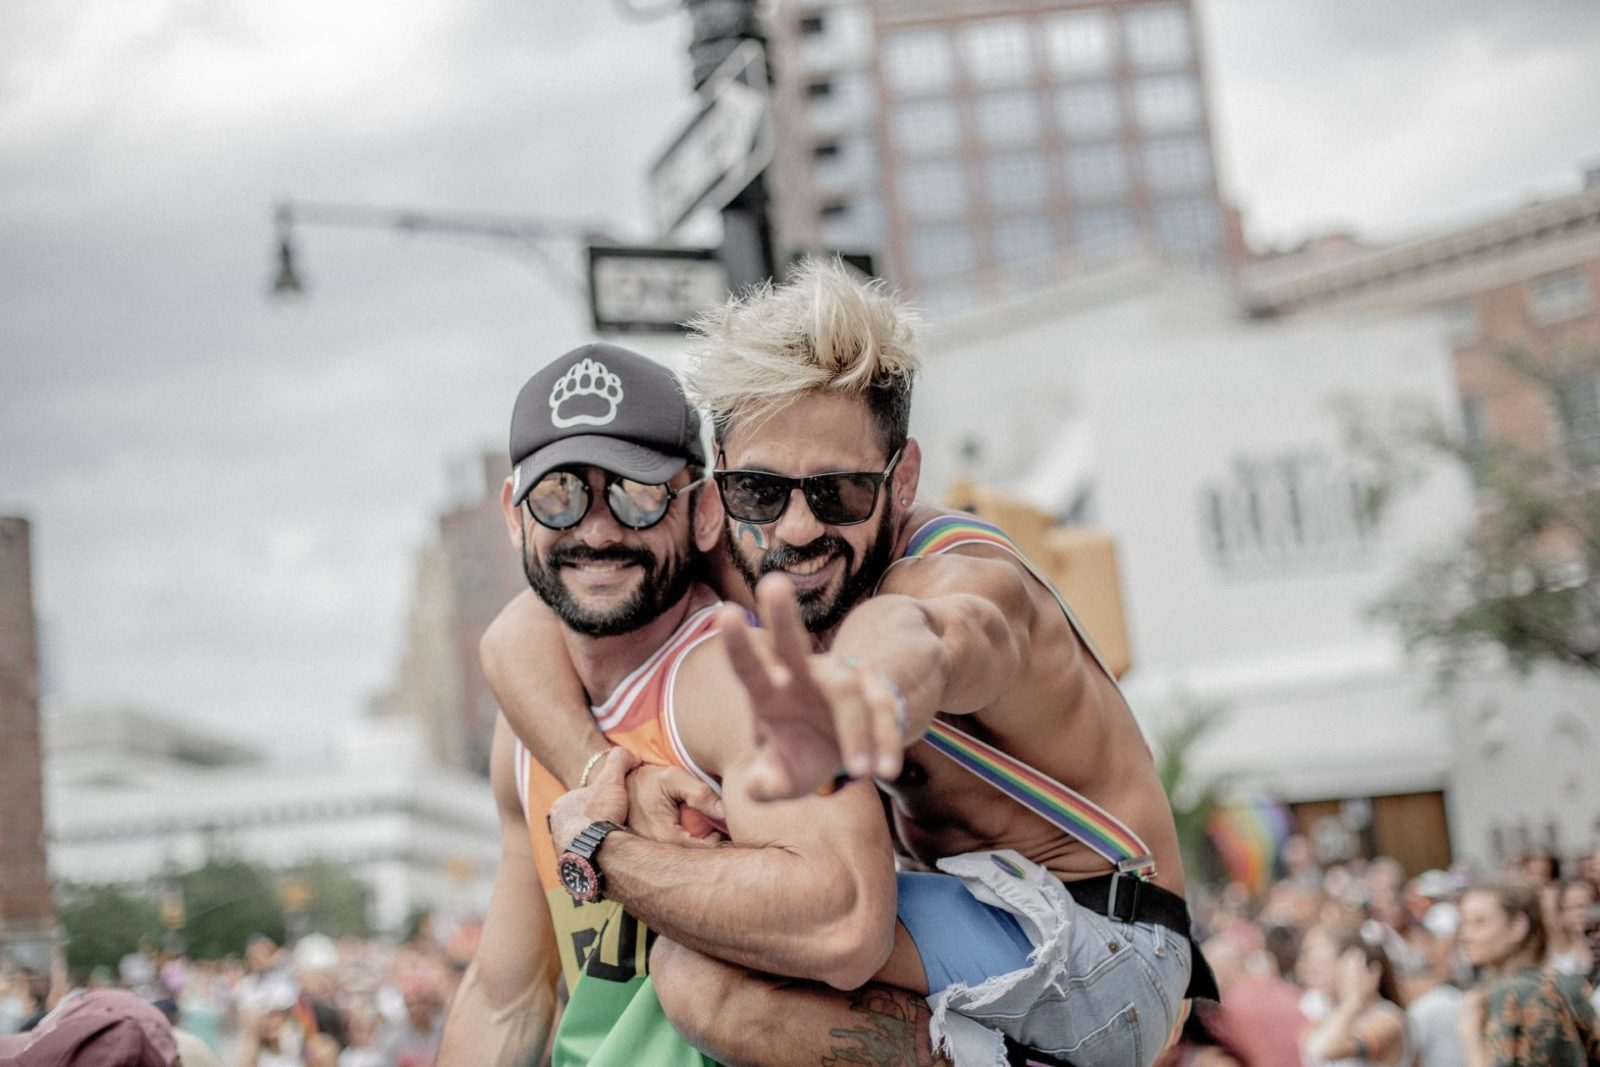 Two men at LGBT event